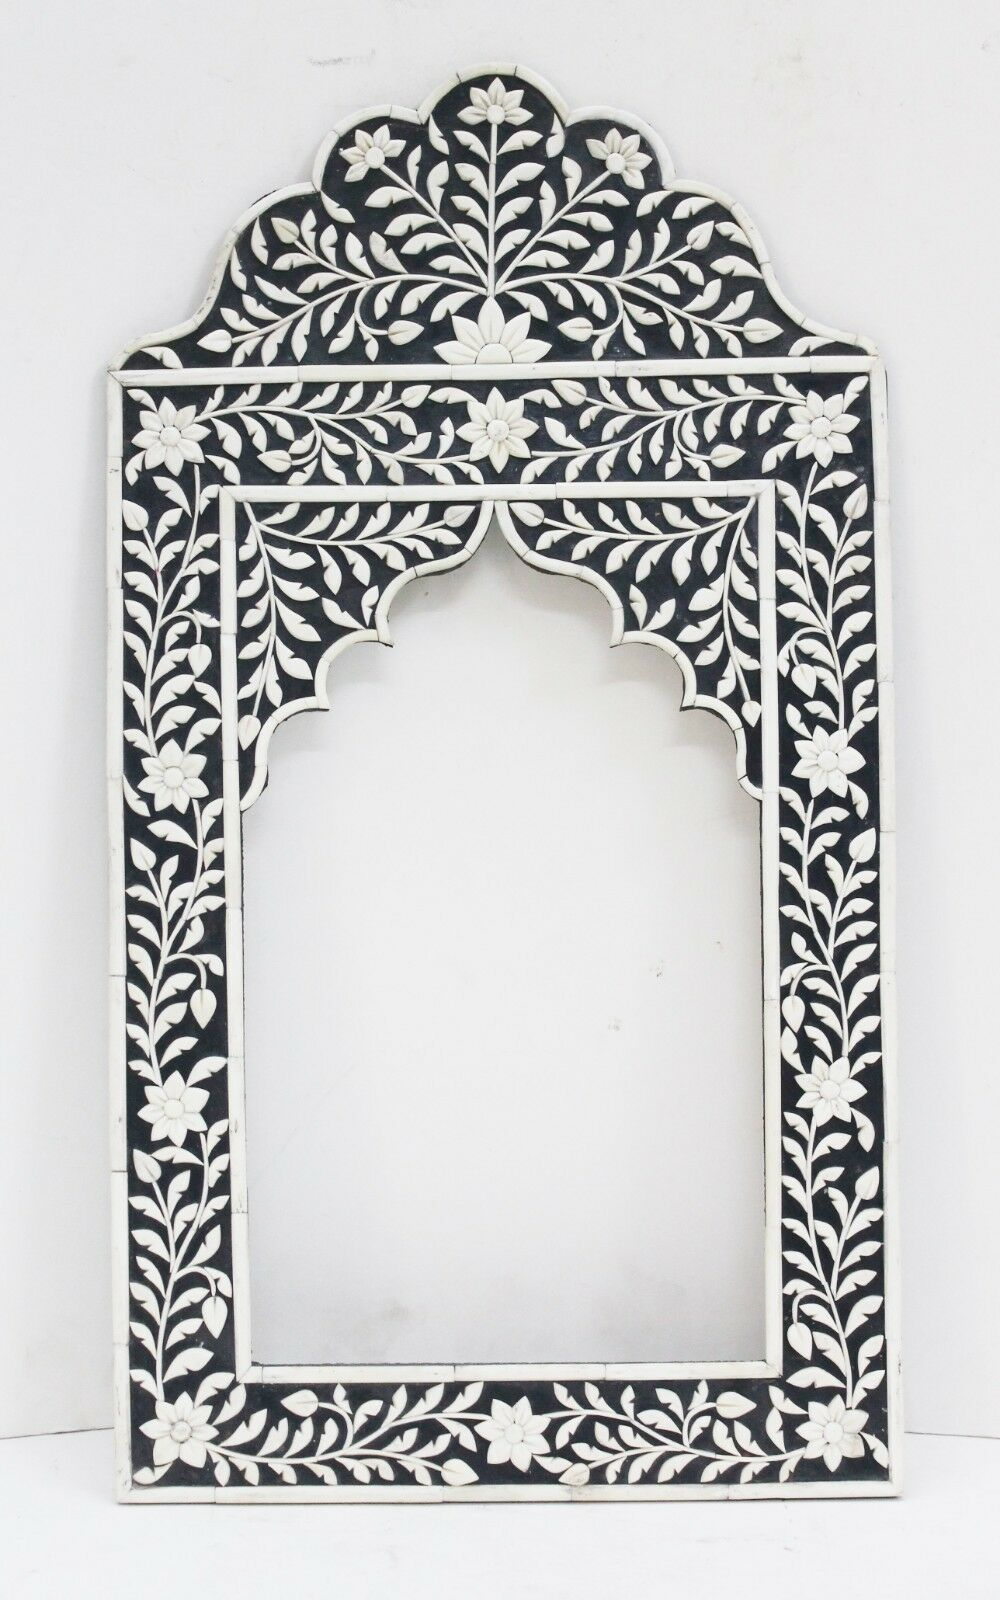 Primary image for Picture Frame Embossed Flower Design Mirror Vintage Camel Bone Wood Art US409AH